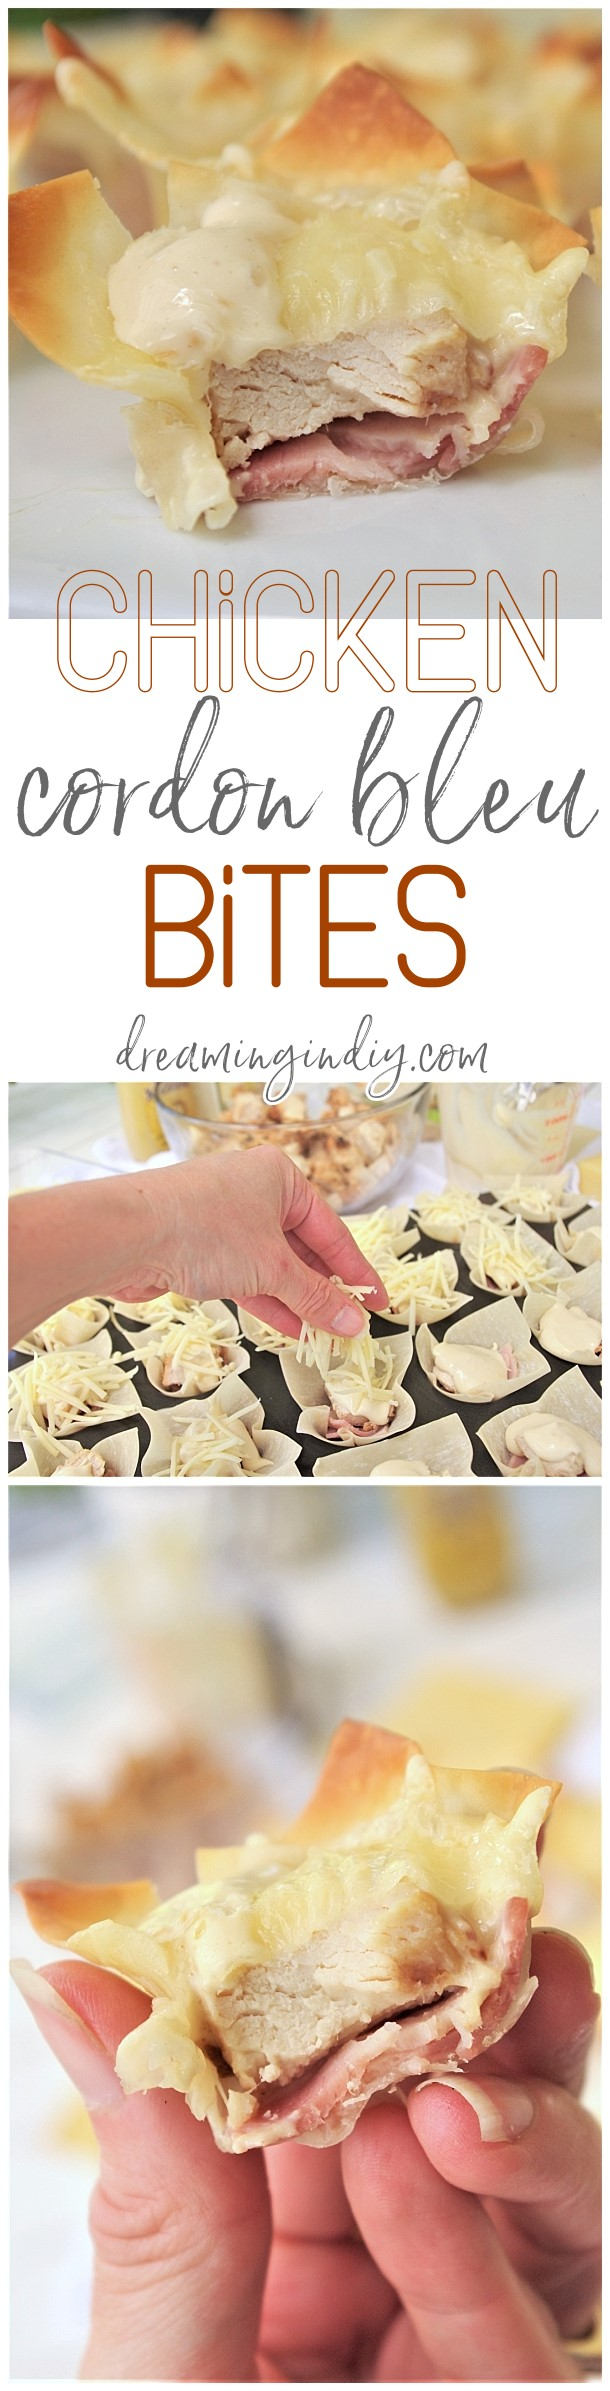 Chicken Cordon Bleu Cups - Easy Yummy Bite Sized Appetizer Recipe Quick Crowd Favorite Party Time Finger Foods